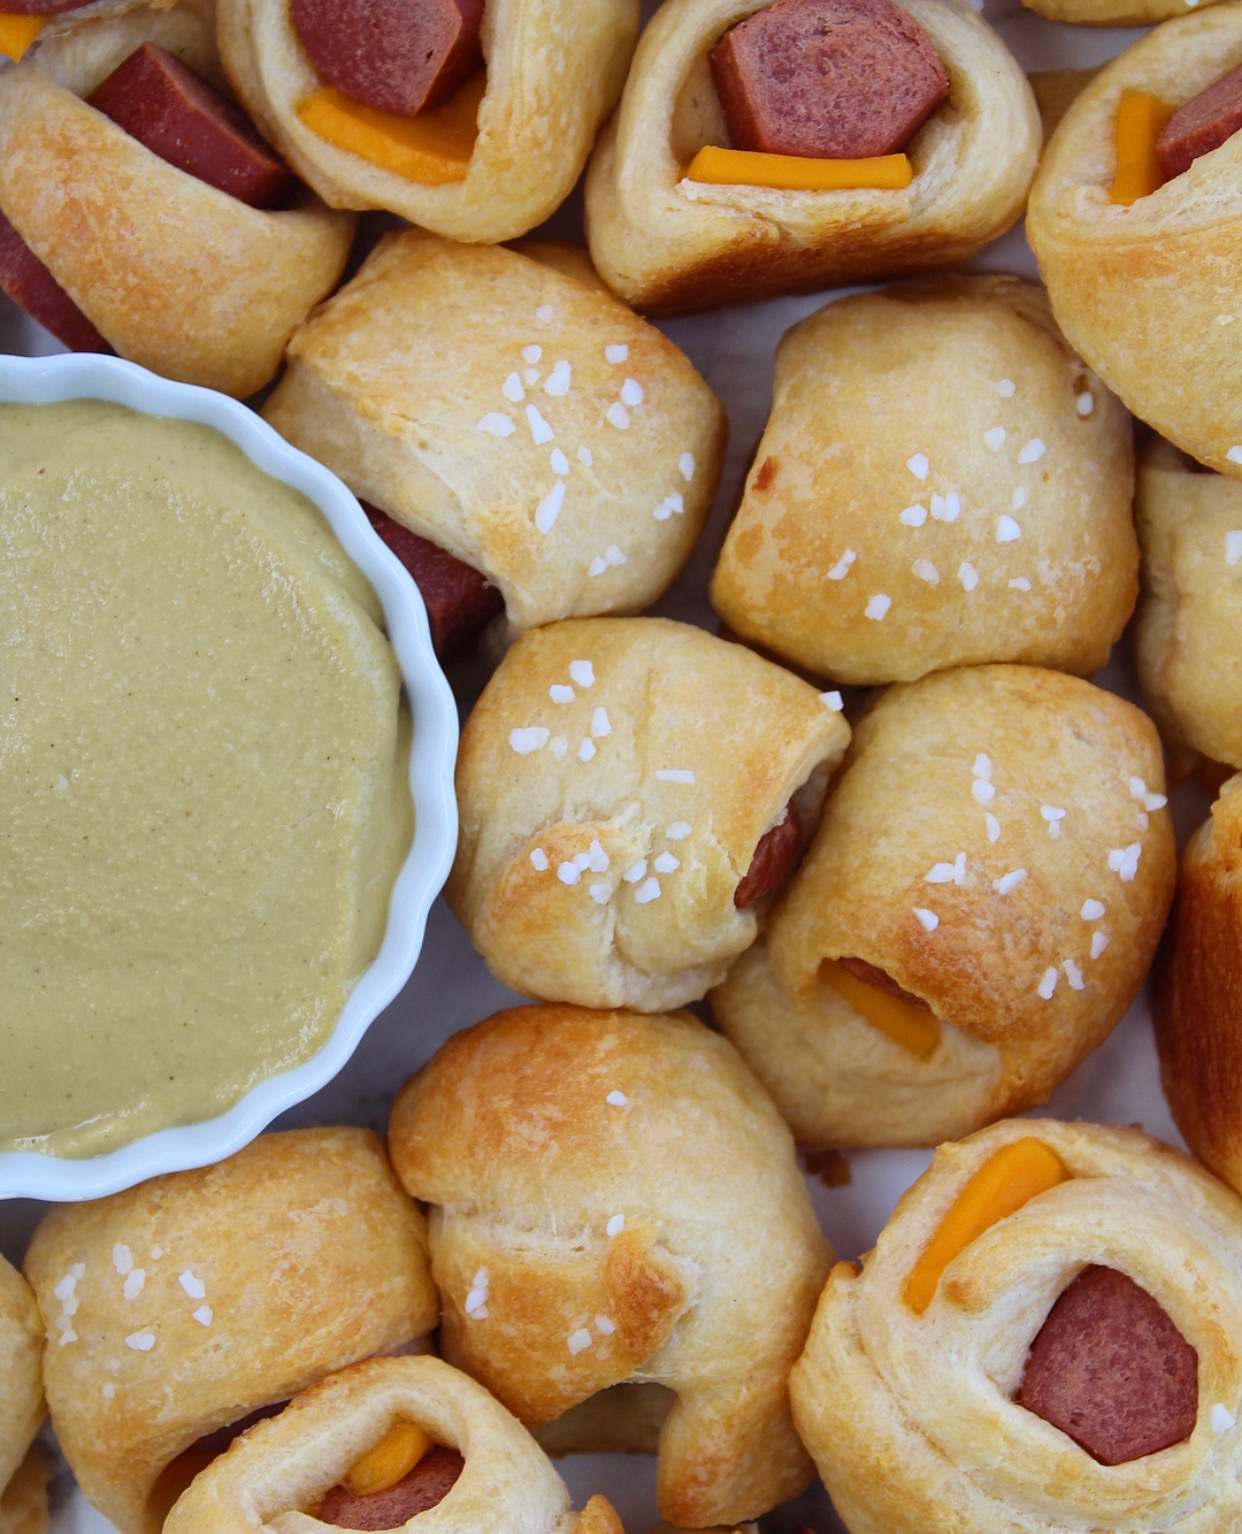 Cheesy Pretzel Pigs in a Blanket with Sweet Mustard